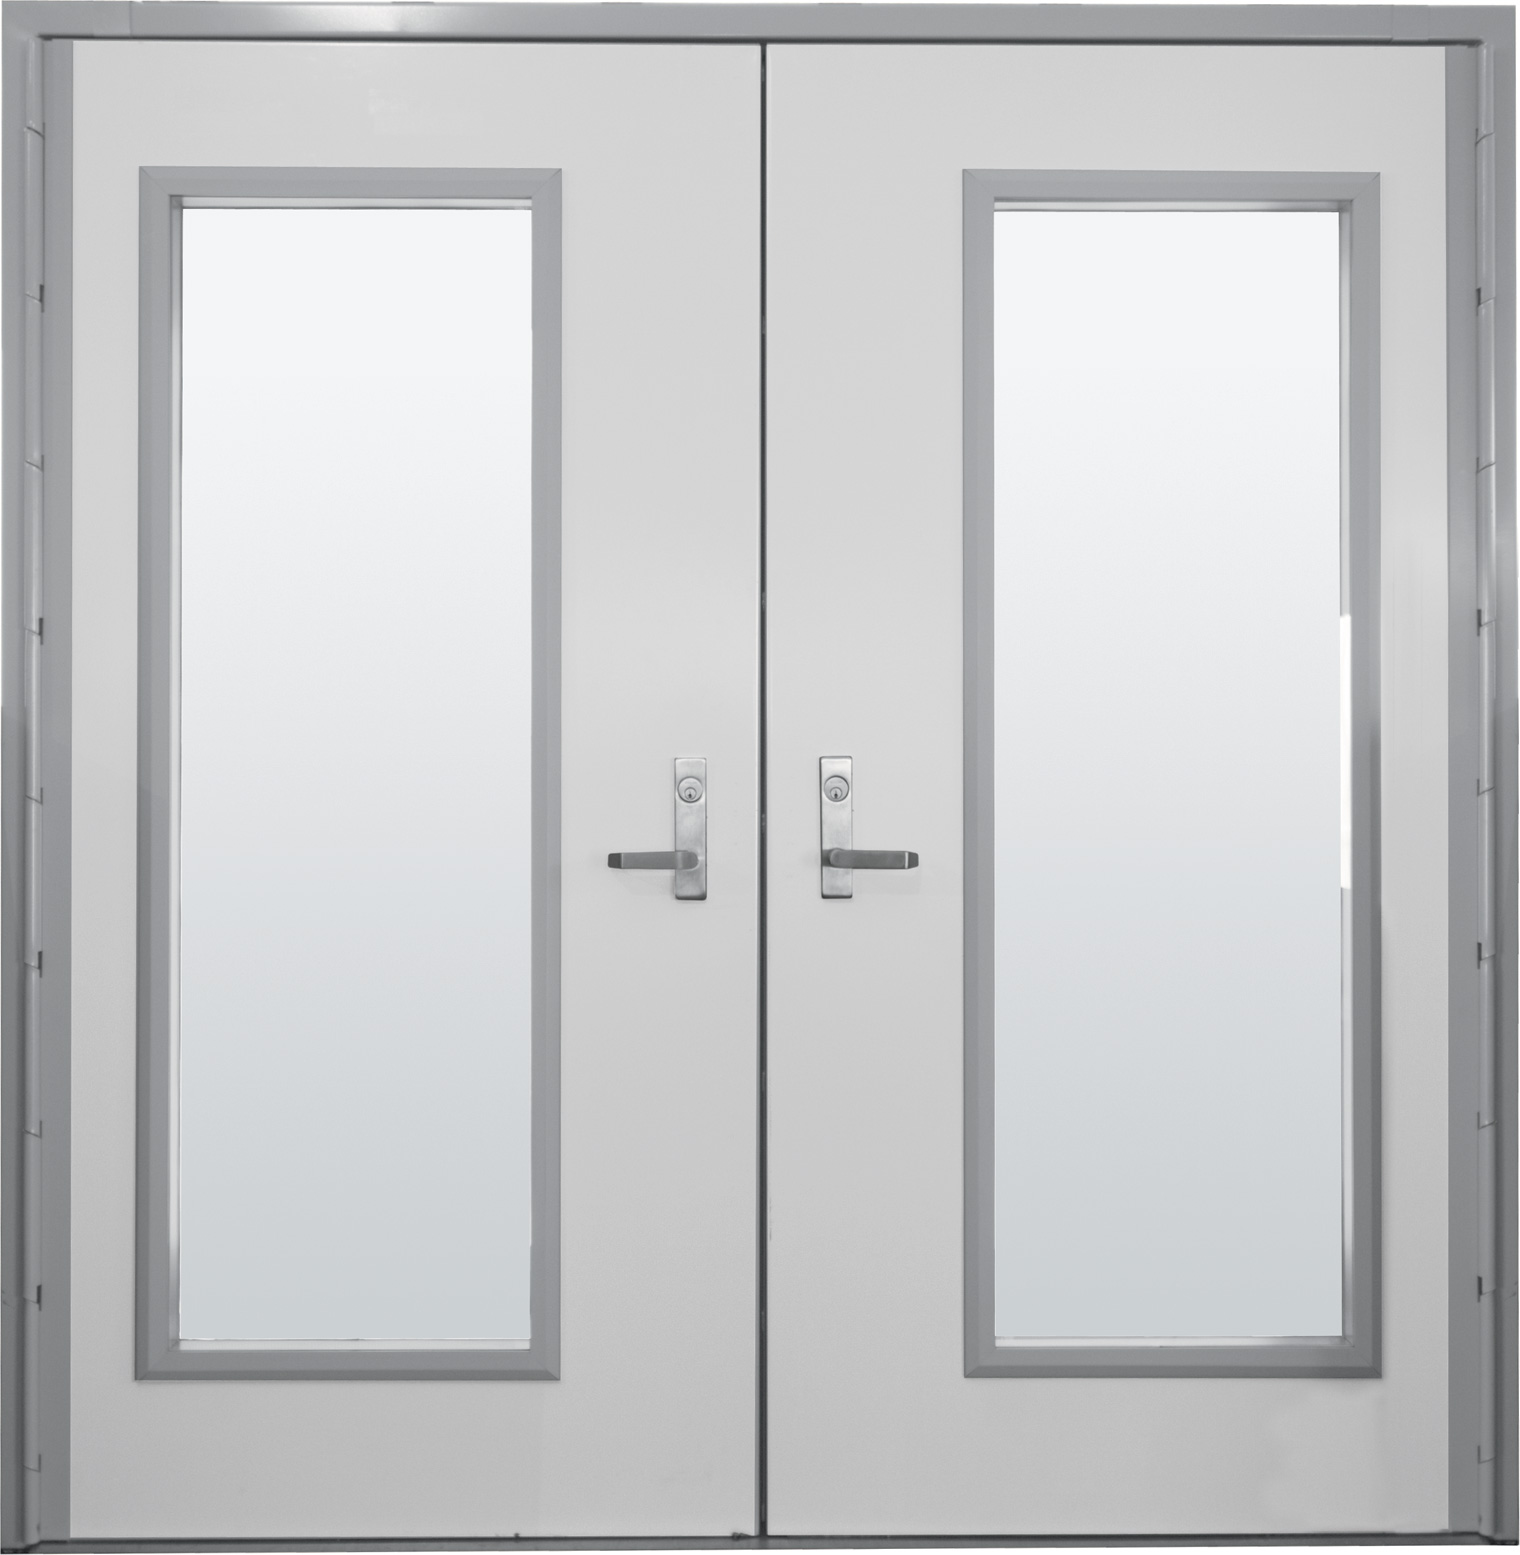 Double Doors with Full Windows  sc 1 st  Wenger u0026 JR Clancy - Wenger Corporation & Acoustical Doors - Wenger